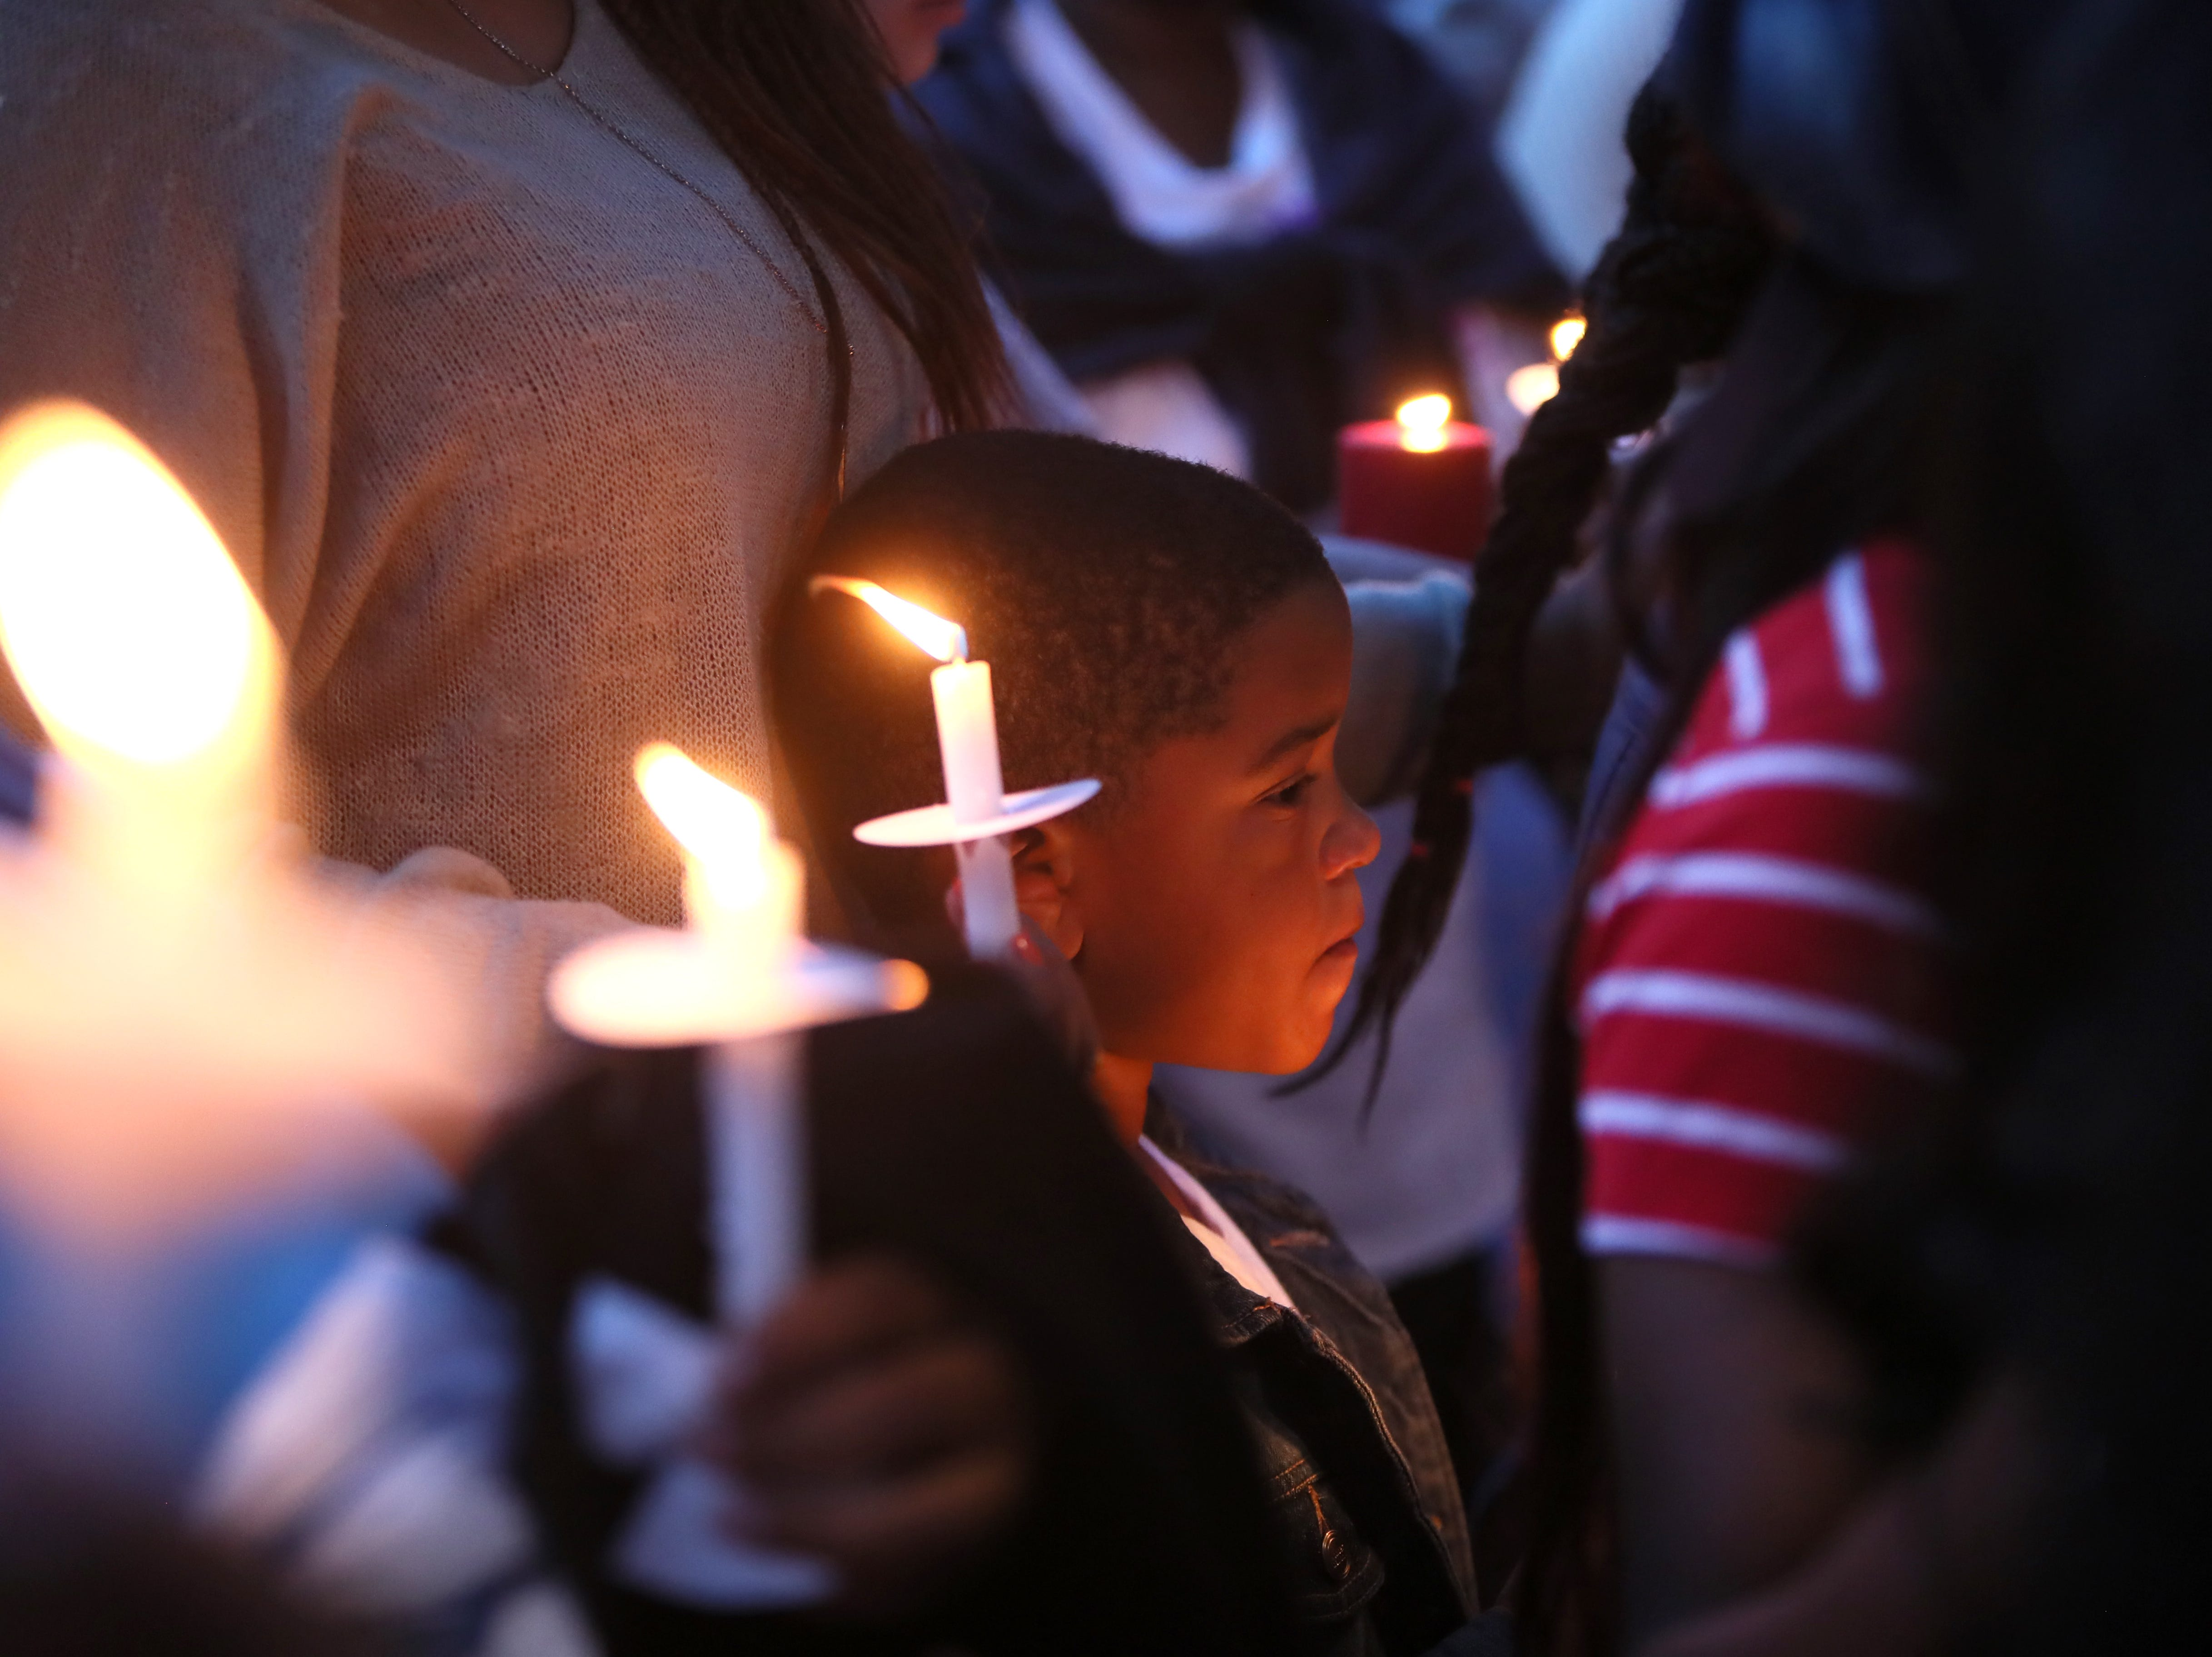 People gather for a vigil Tuesday at West Junior High School in honor of former student Taylon Vail, 16, who was killed early Friday morning in a shooting at his grandparent's house where he was staying overnight.